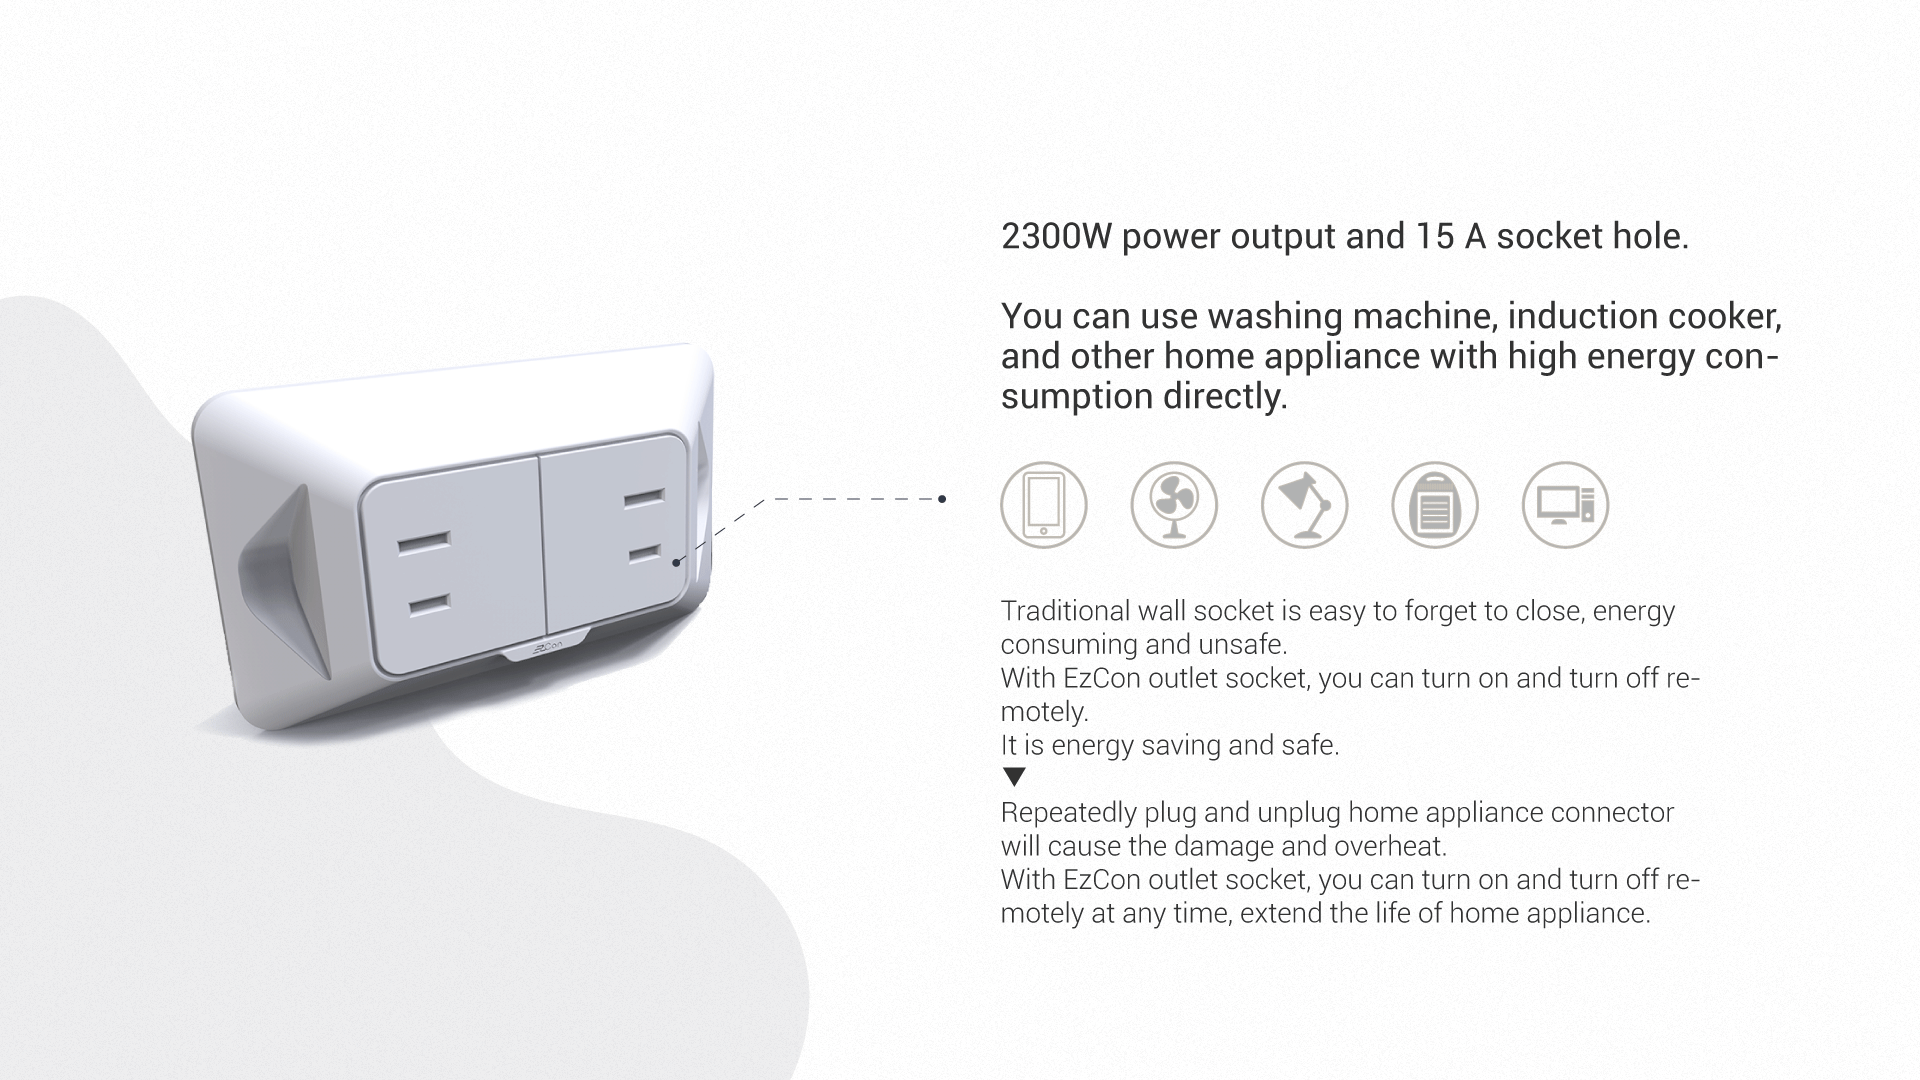 More convenient to use. No need to unplug power cord every time.